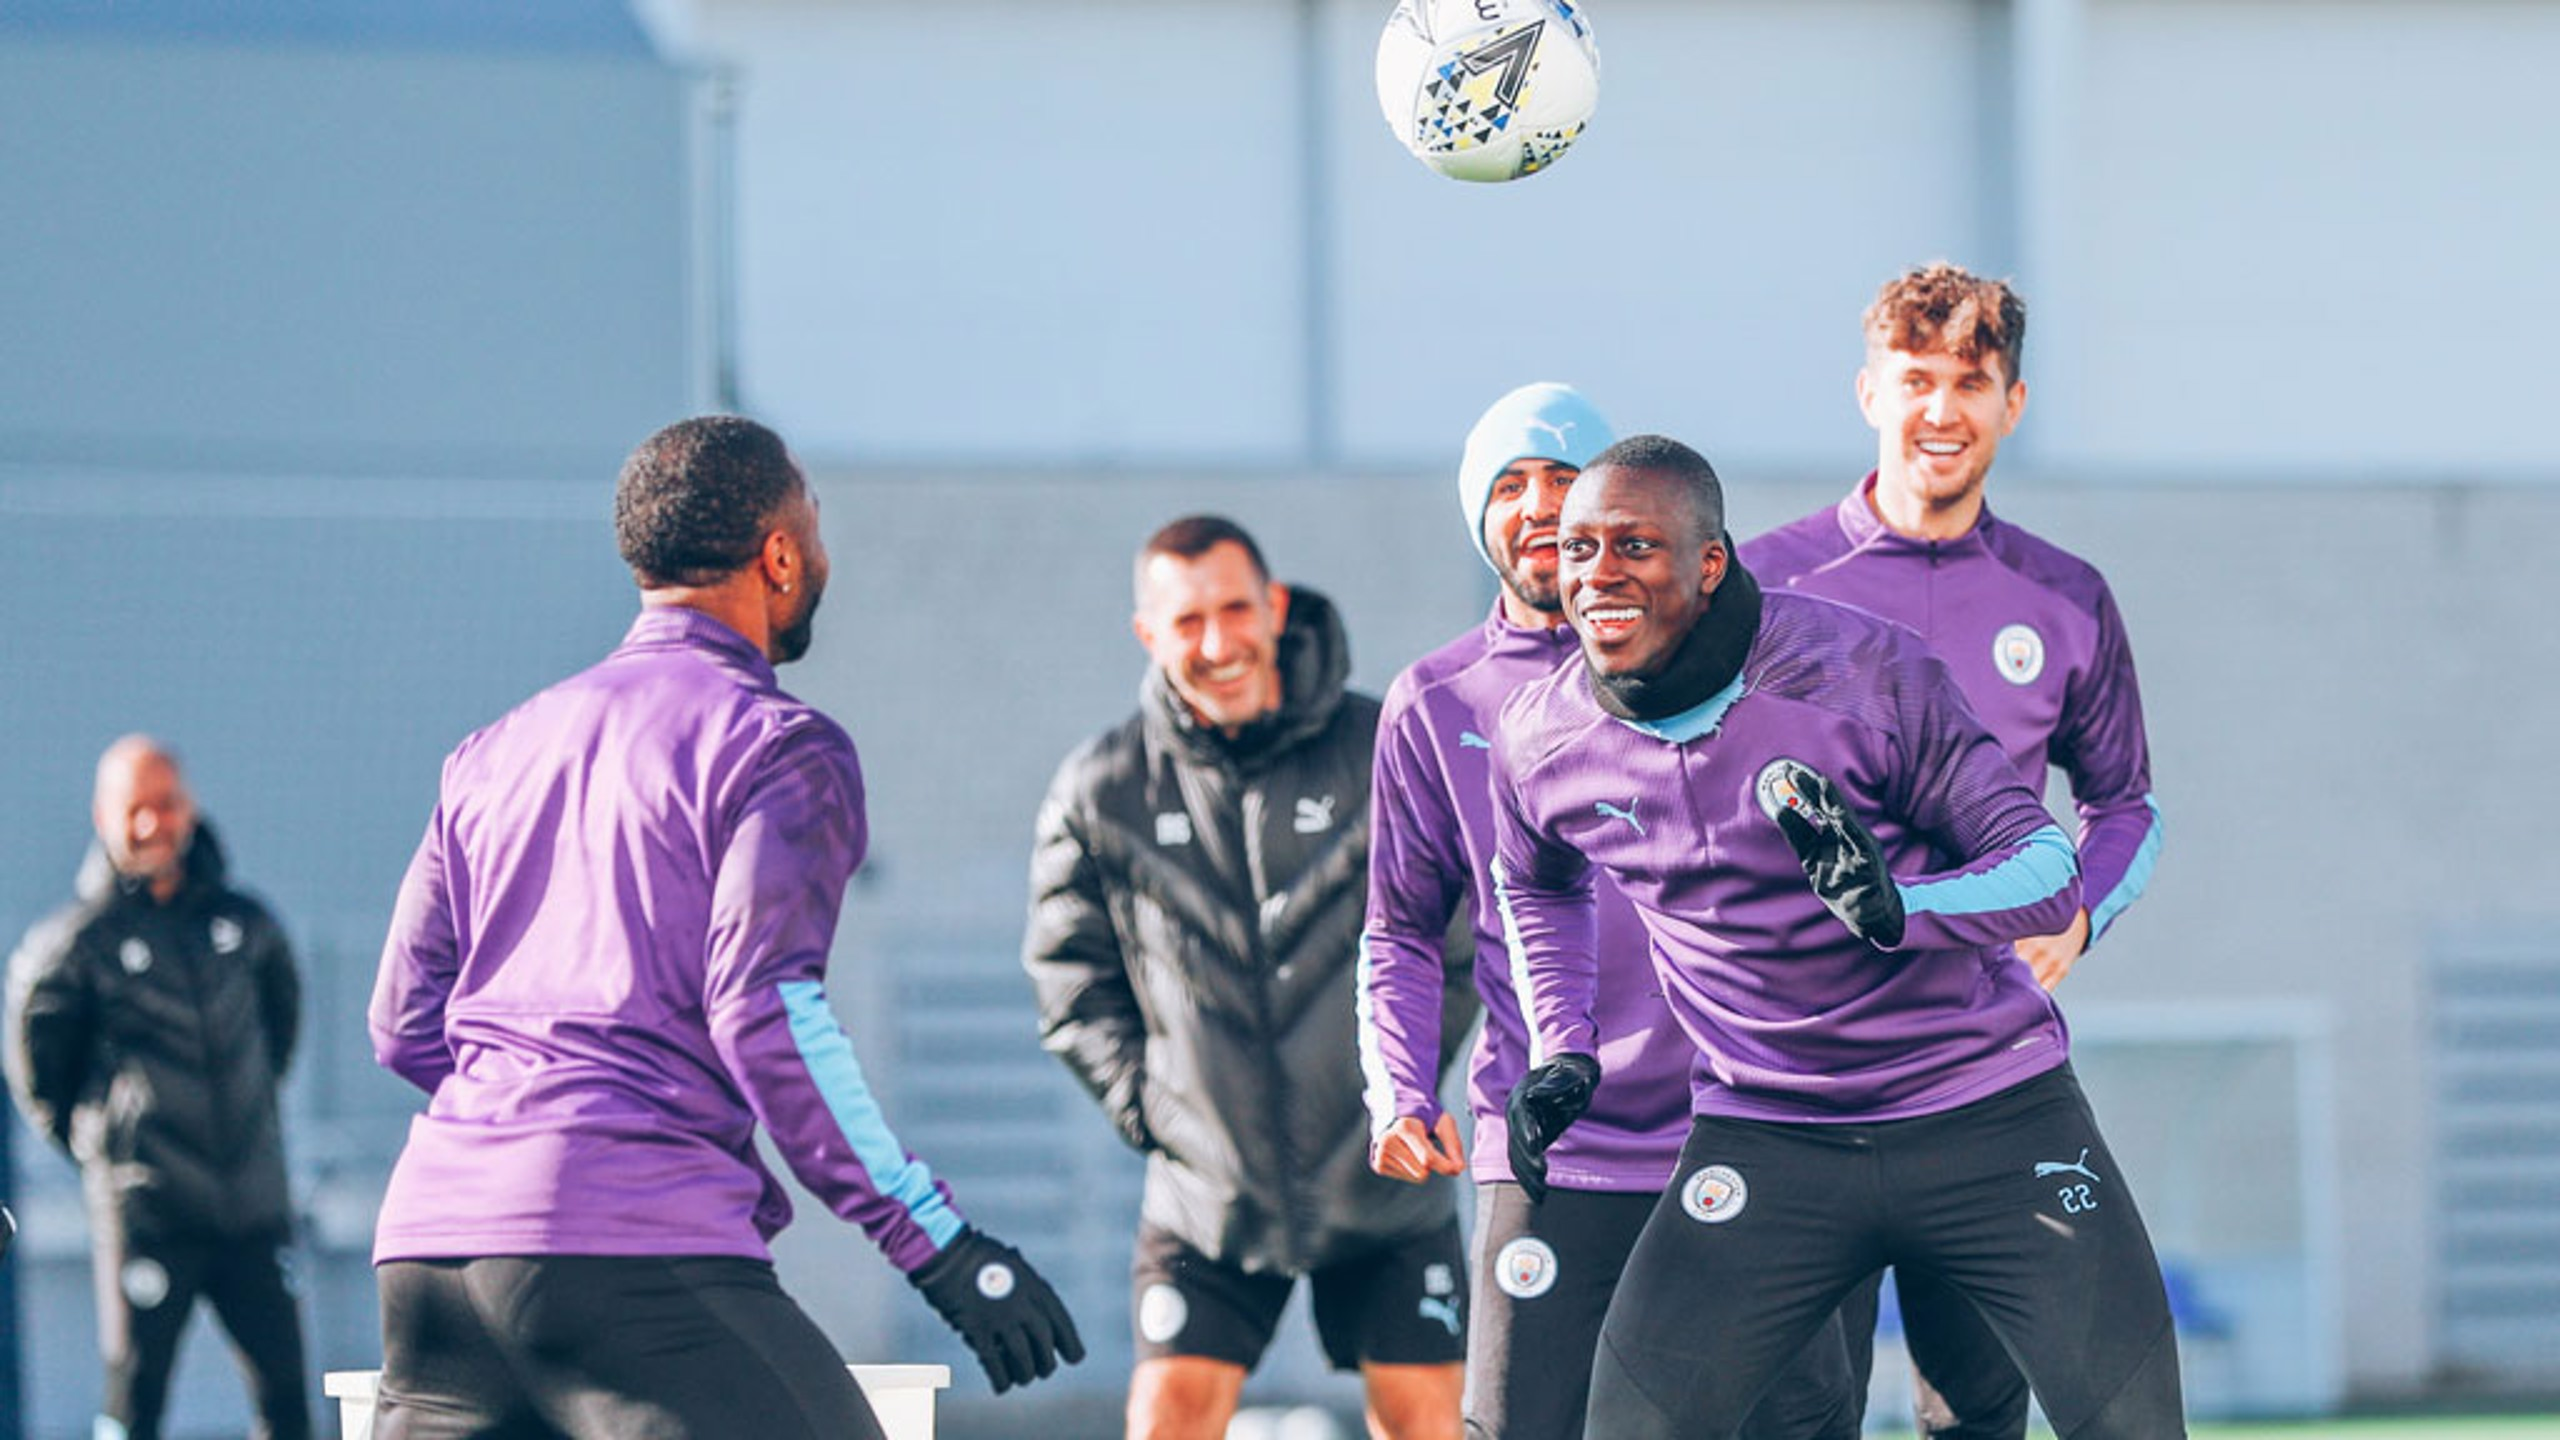 HEADS YOU WIN: Raz and Benjamin Mendy engage in a spot of head tennis